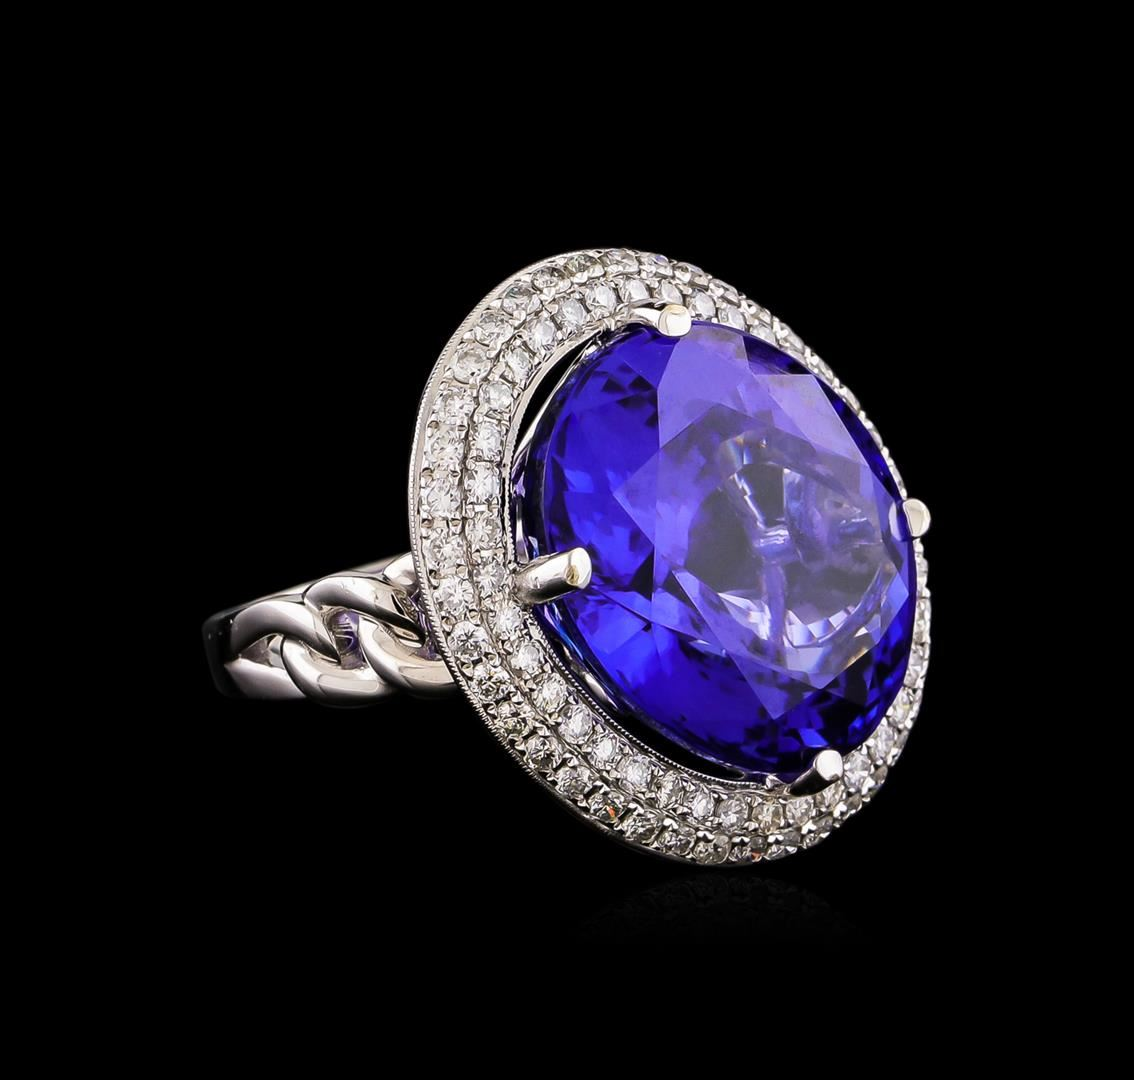 white handmade estate beautiful ring art breathtakingly natural retail violet victorian antique vintage deco blue tanzanite bluish cluster diamonds halo itm oval diana color ct cut value in princess a gold sapphire striking gia with